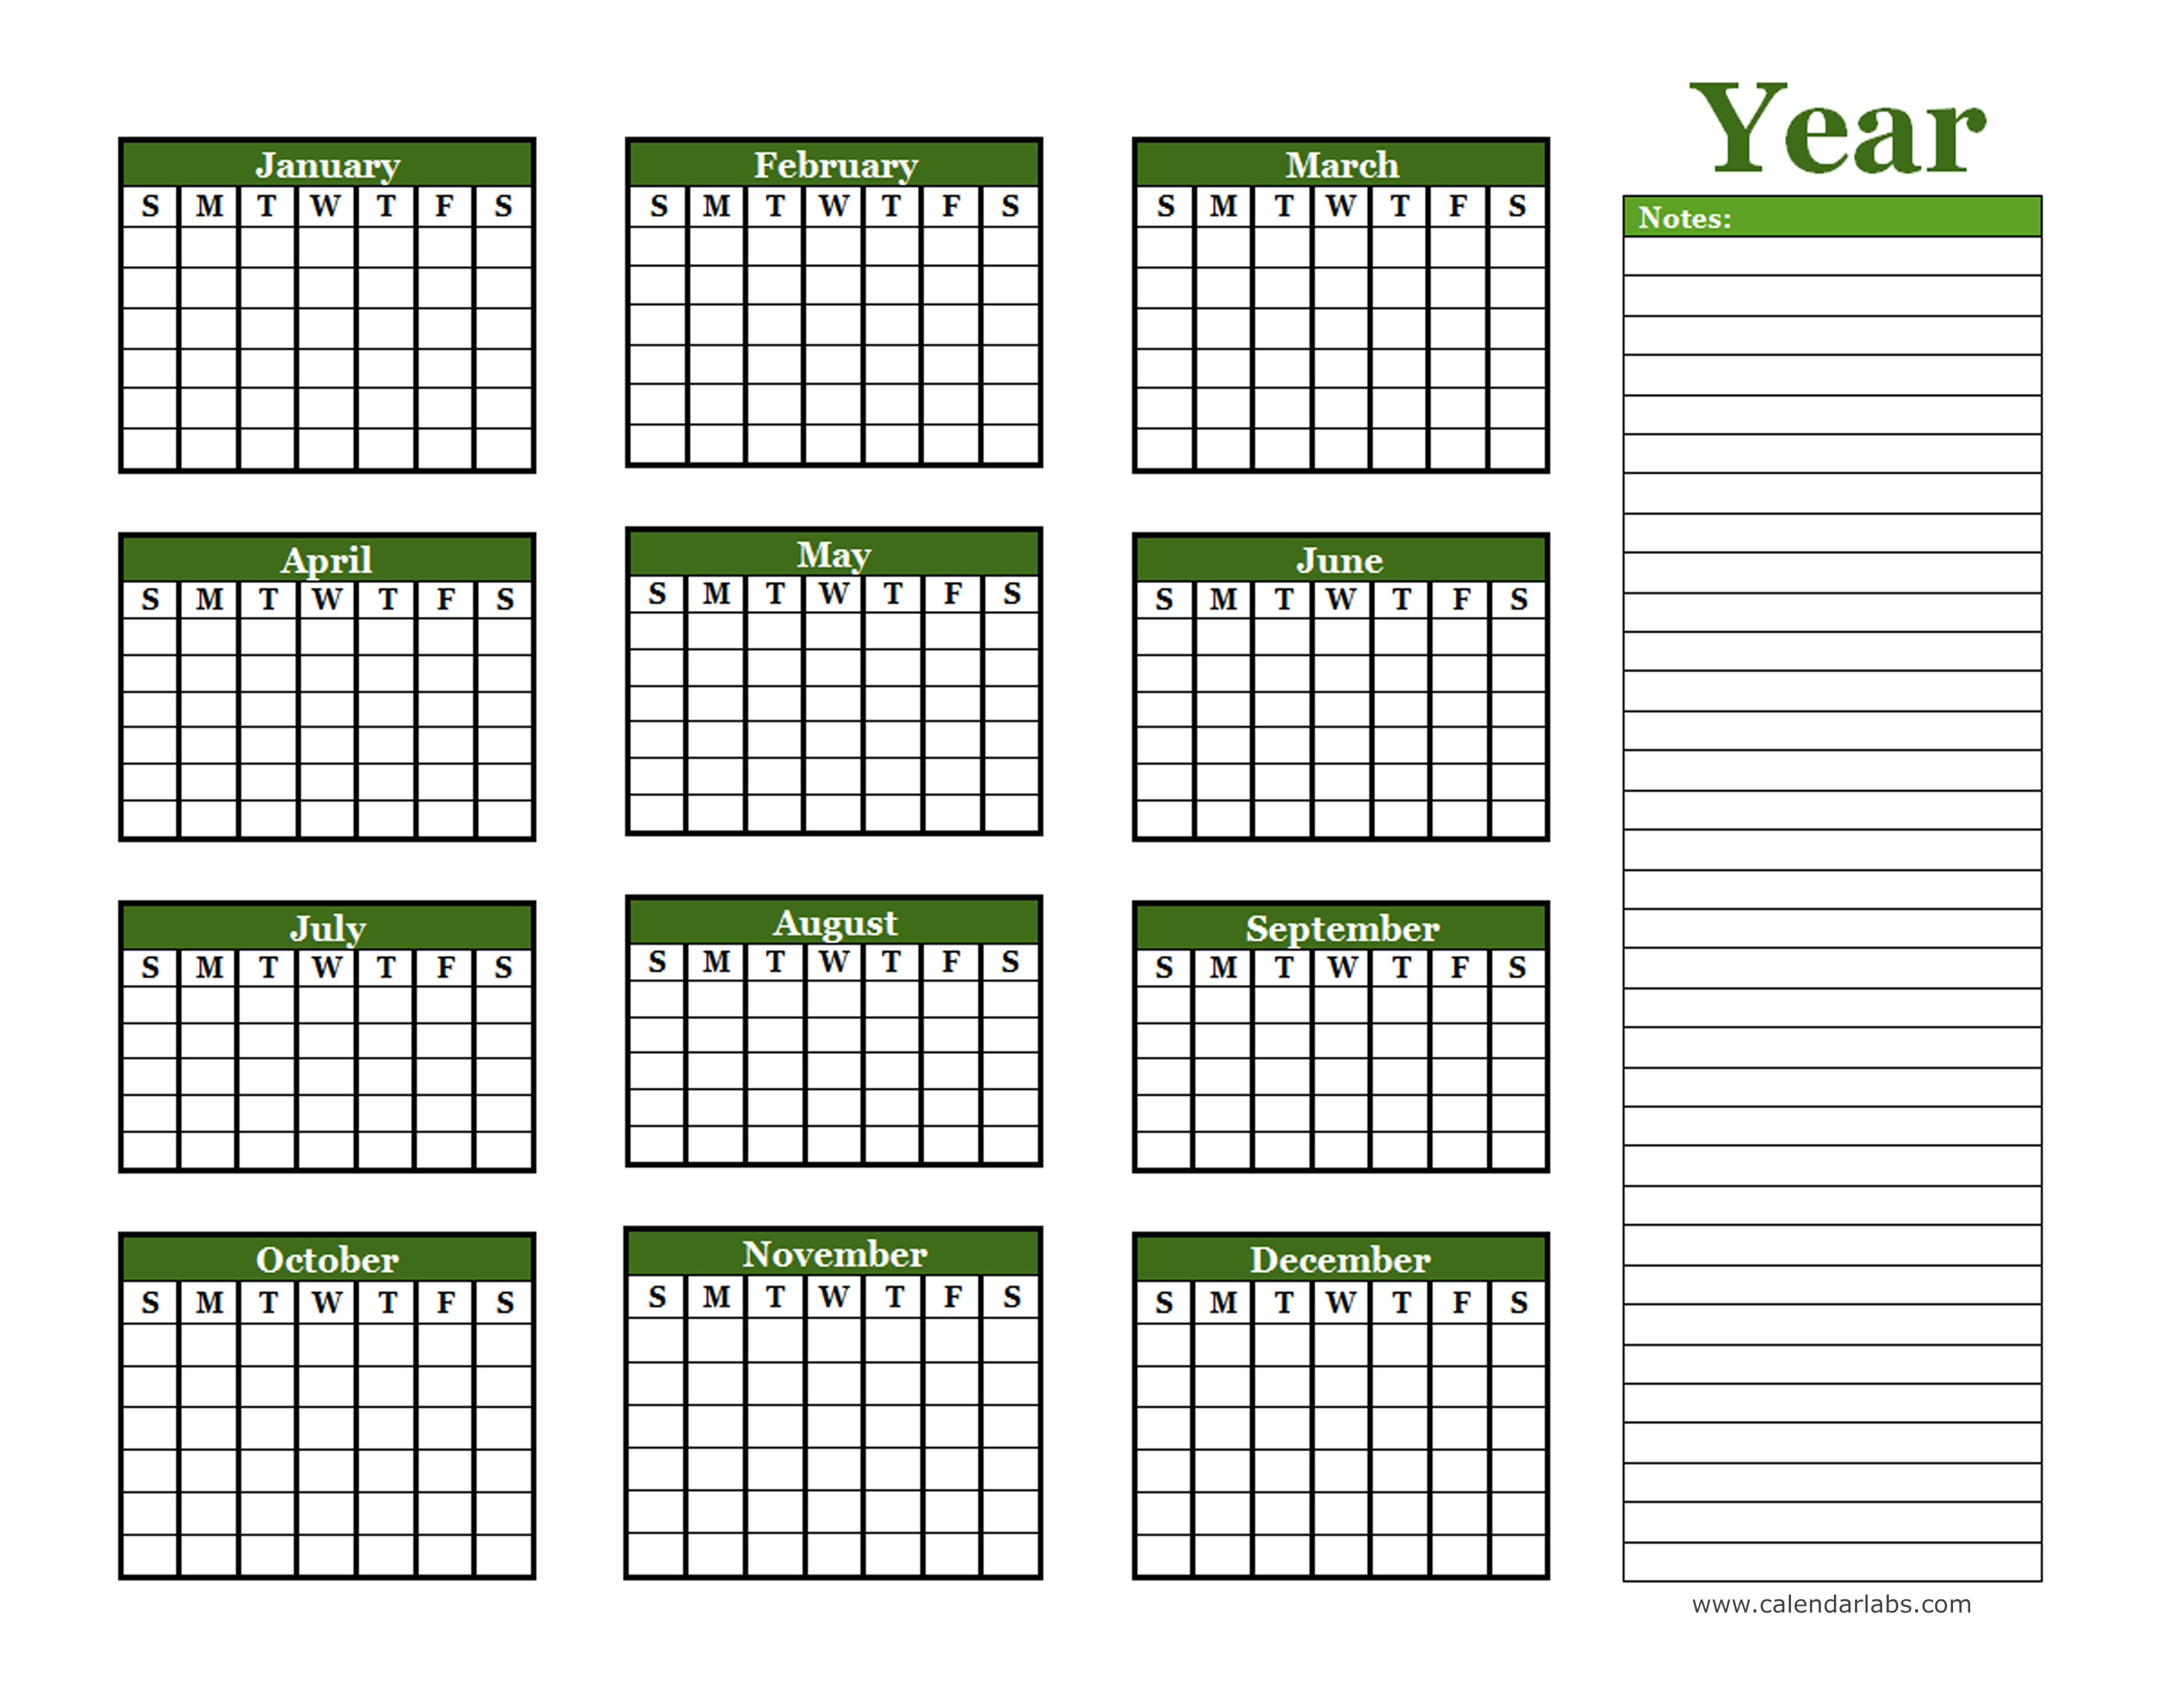 Calendar Year Planner Template : Yearly blank calendar with holidays free printable templates